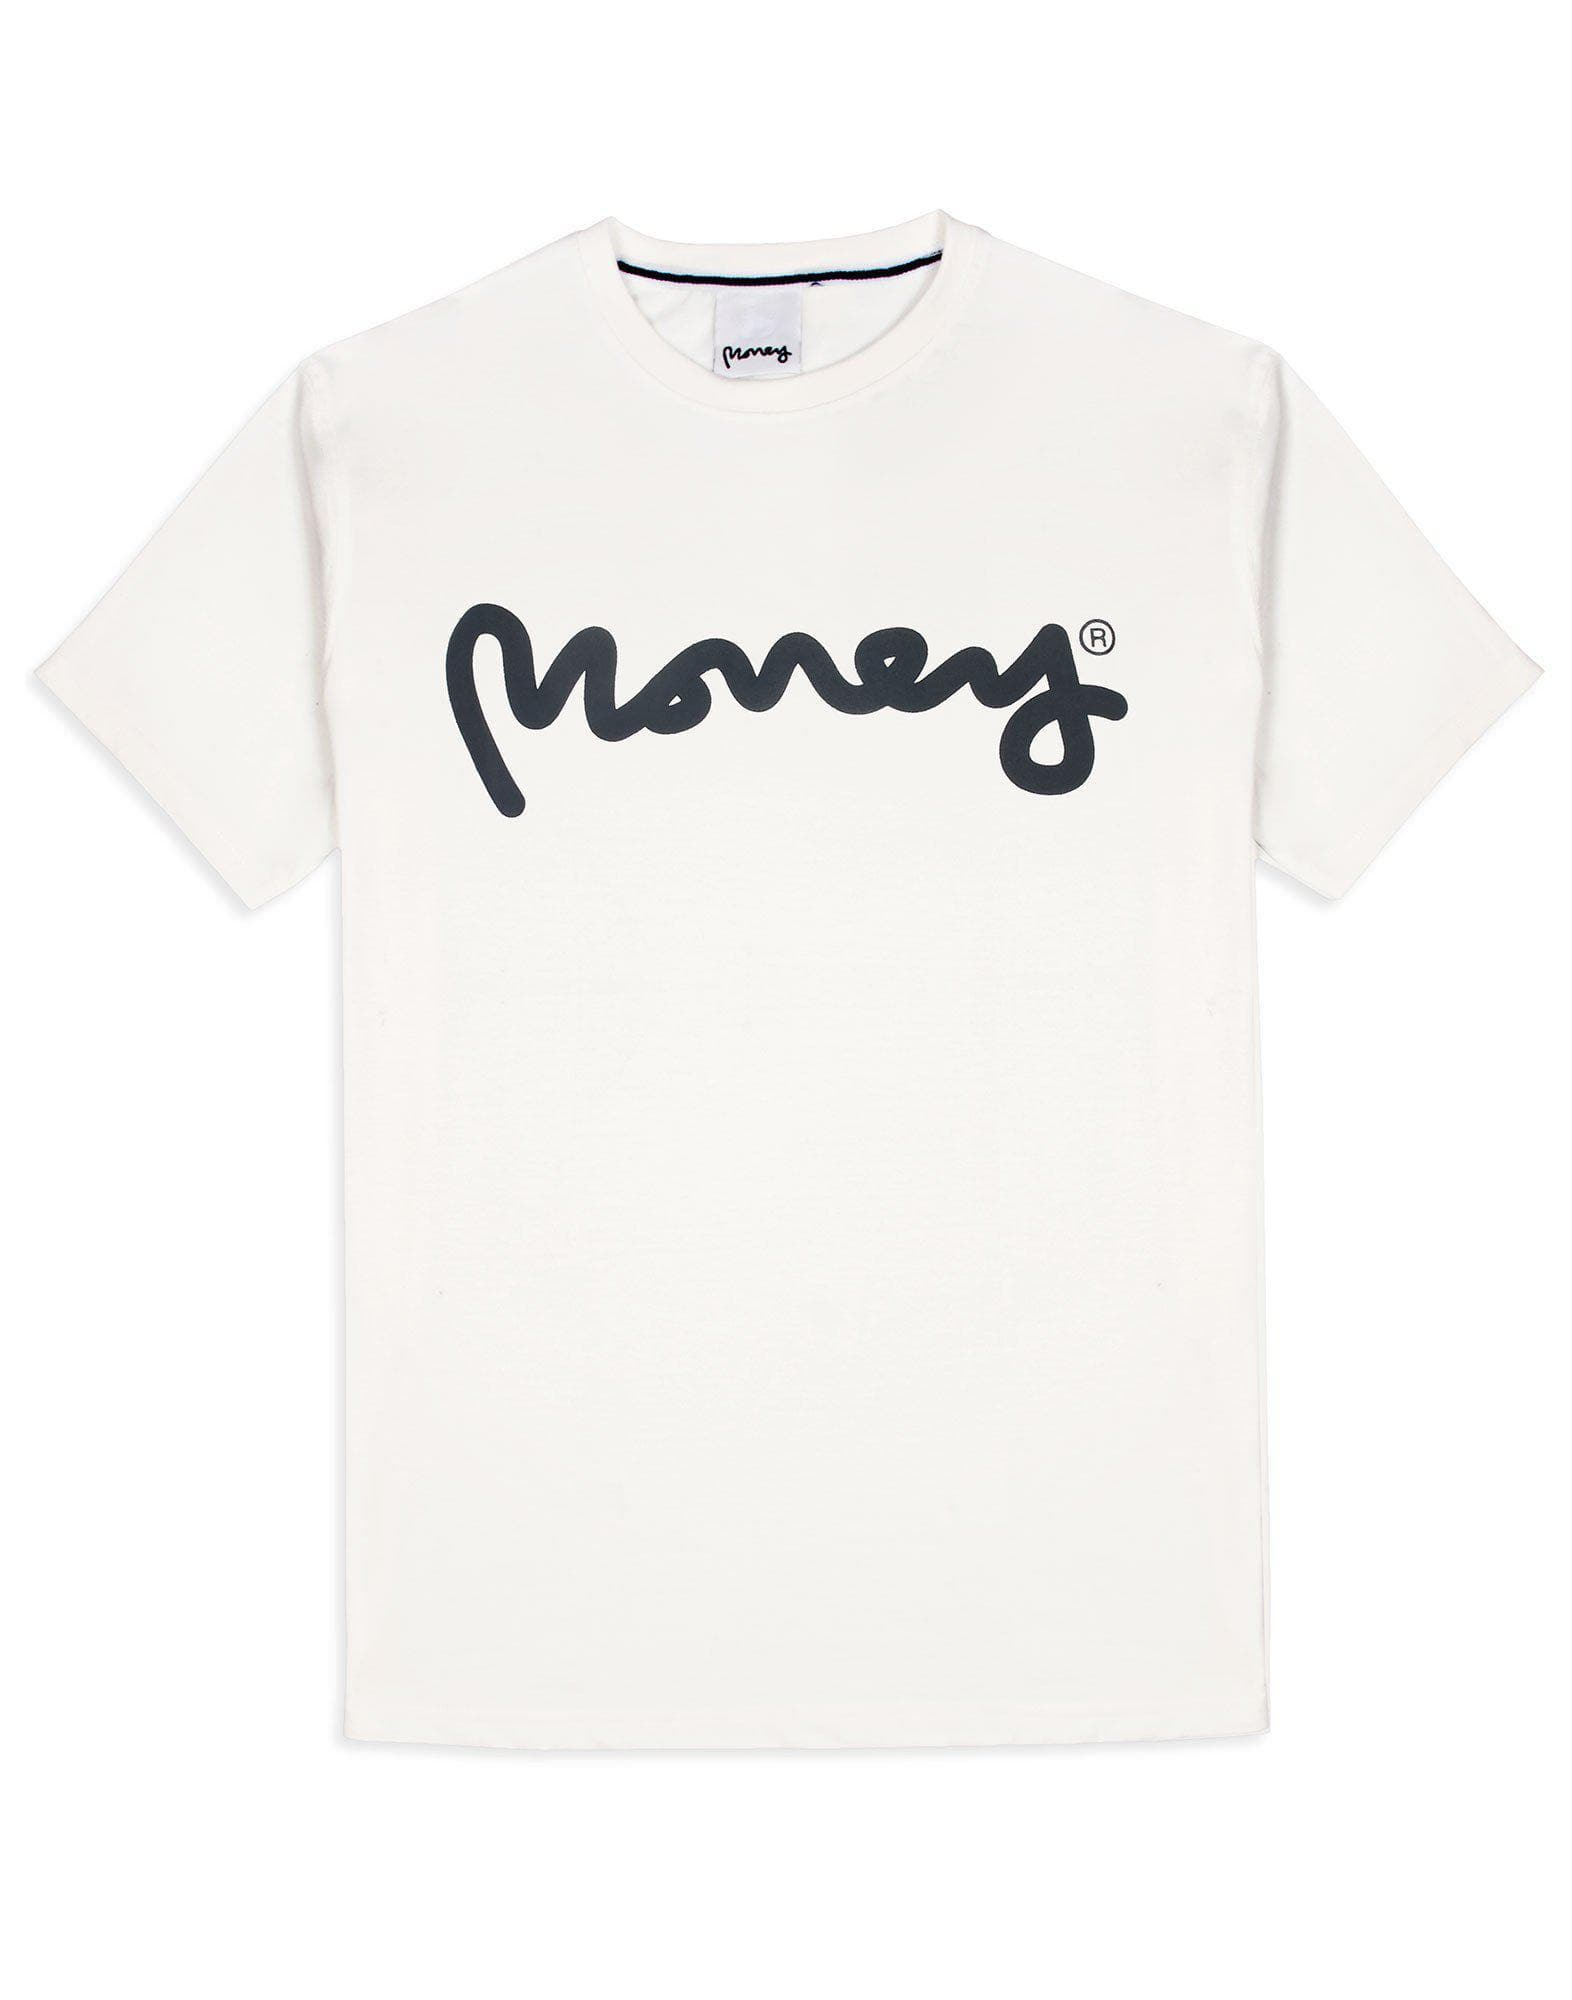 Money Clothing Sig Ape Tee